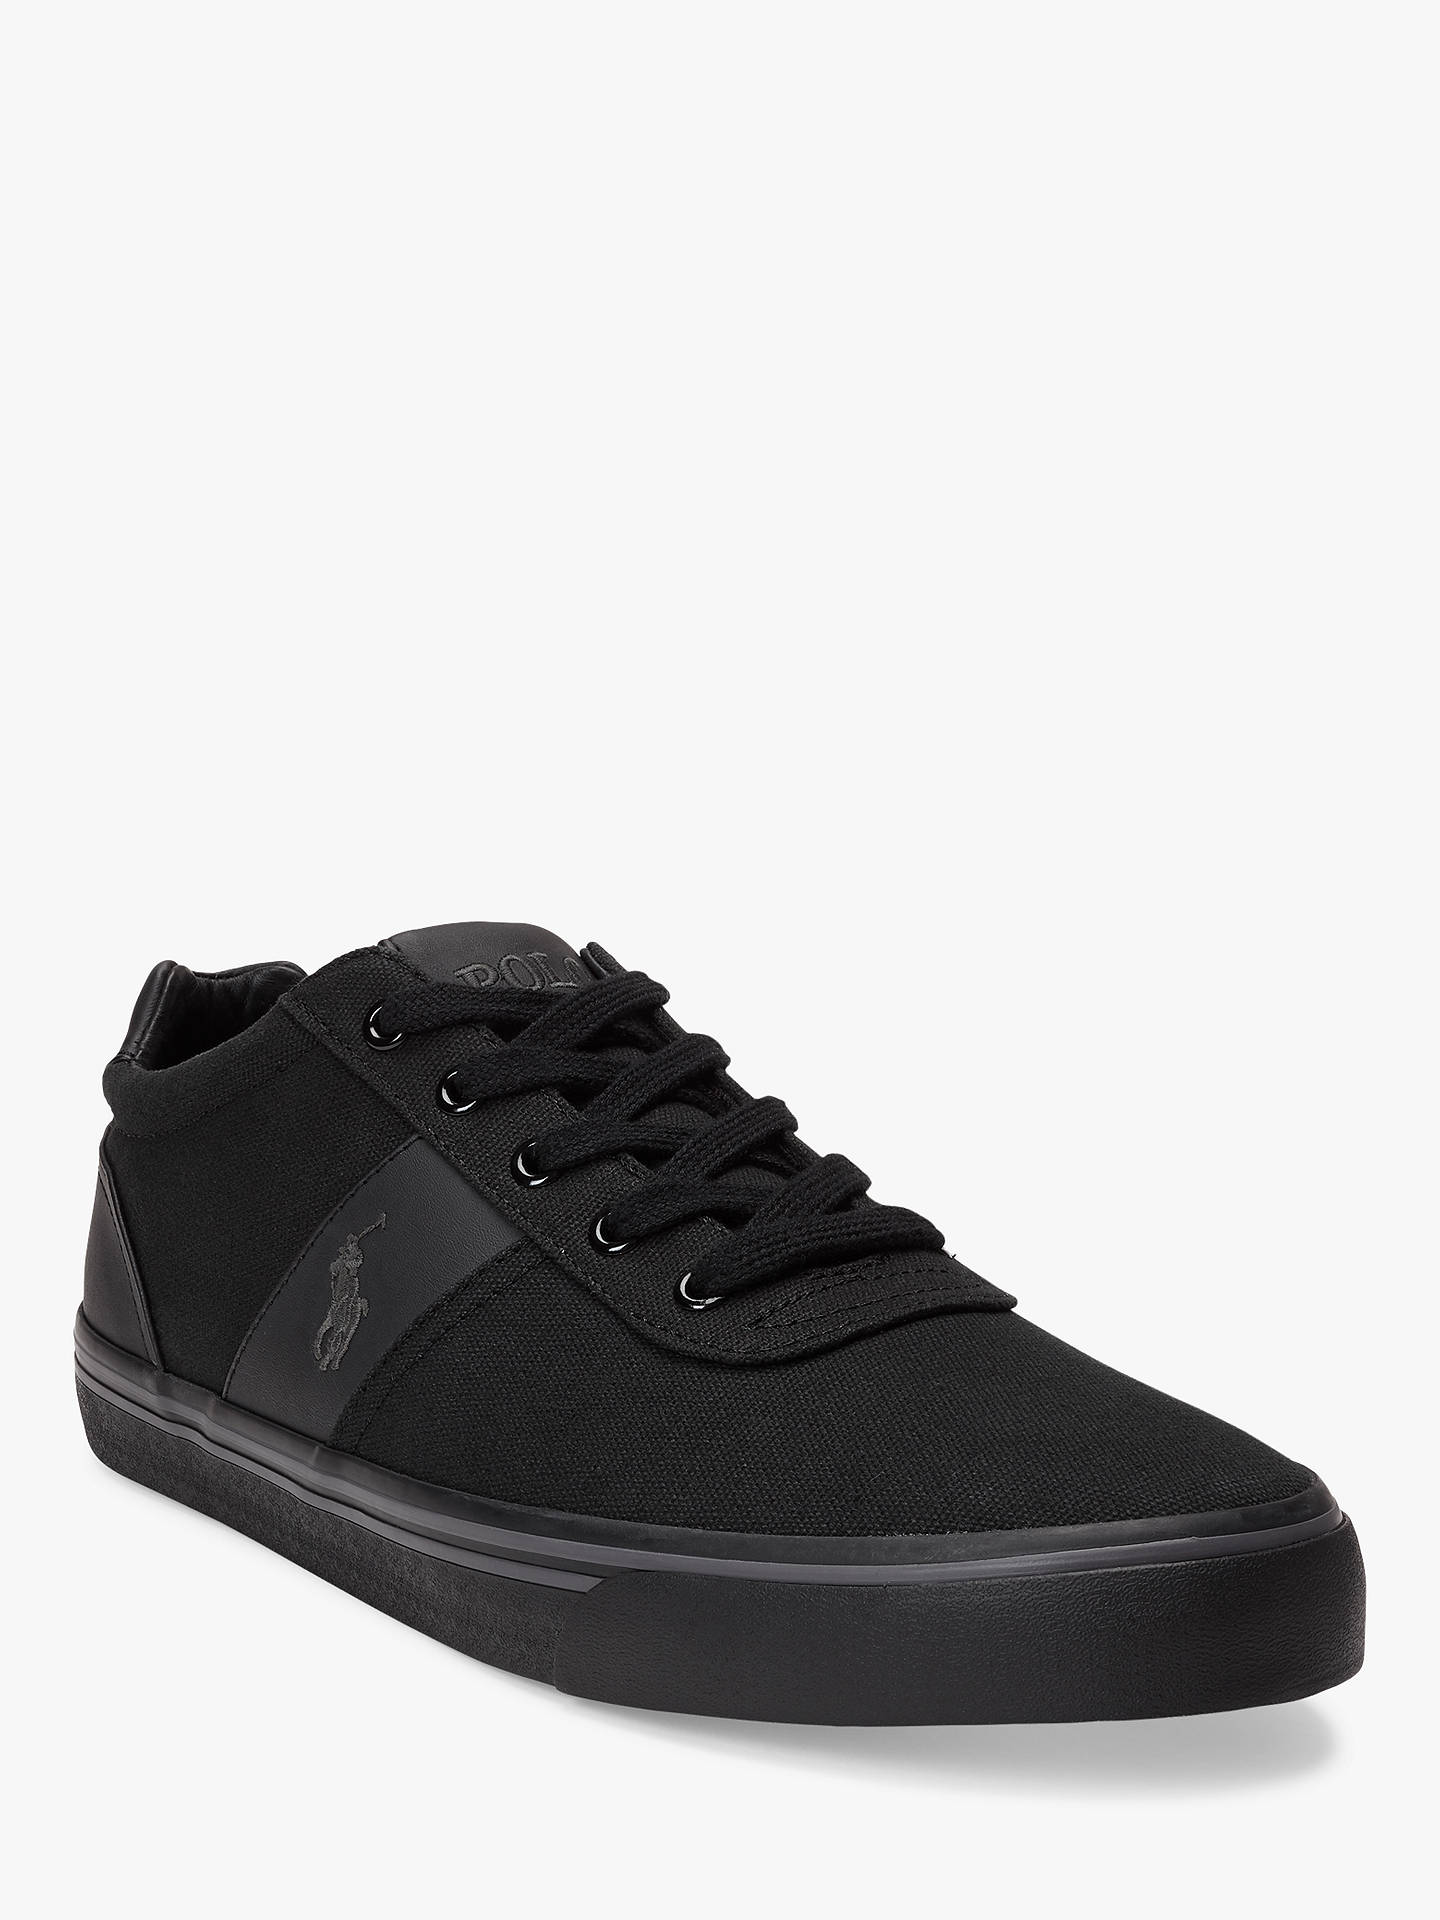 BuyPolo Ralph Lauren Hanford Canvas Trainers, Black, 7 Online at johnlewis.com